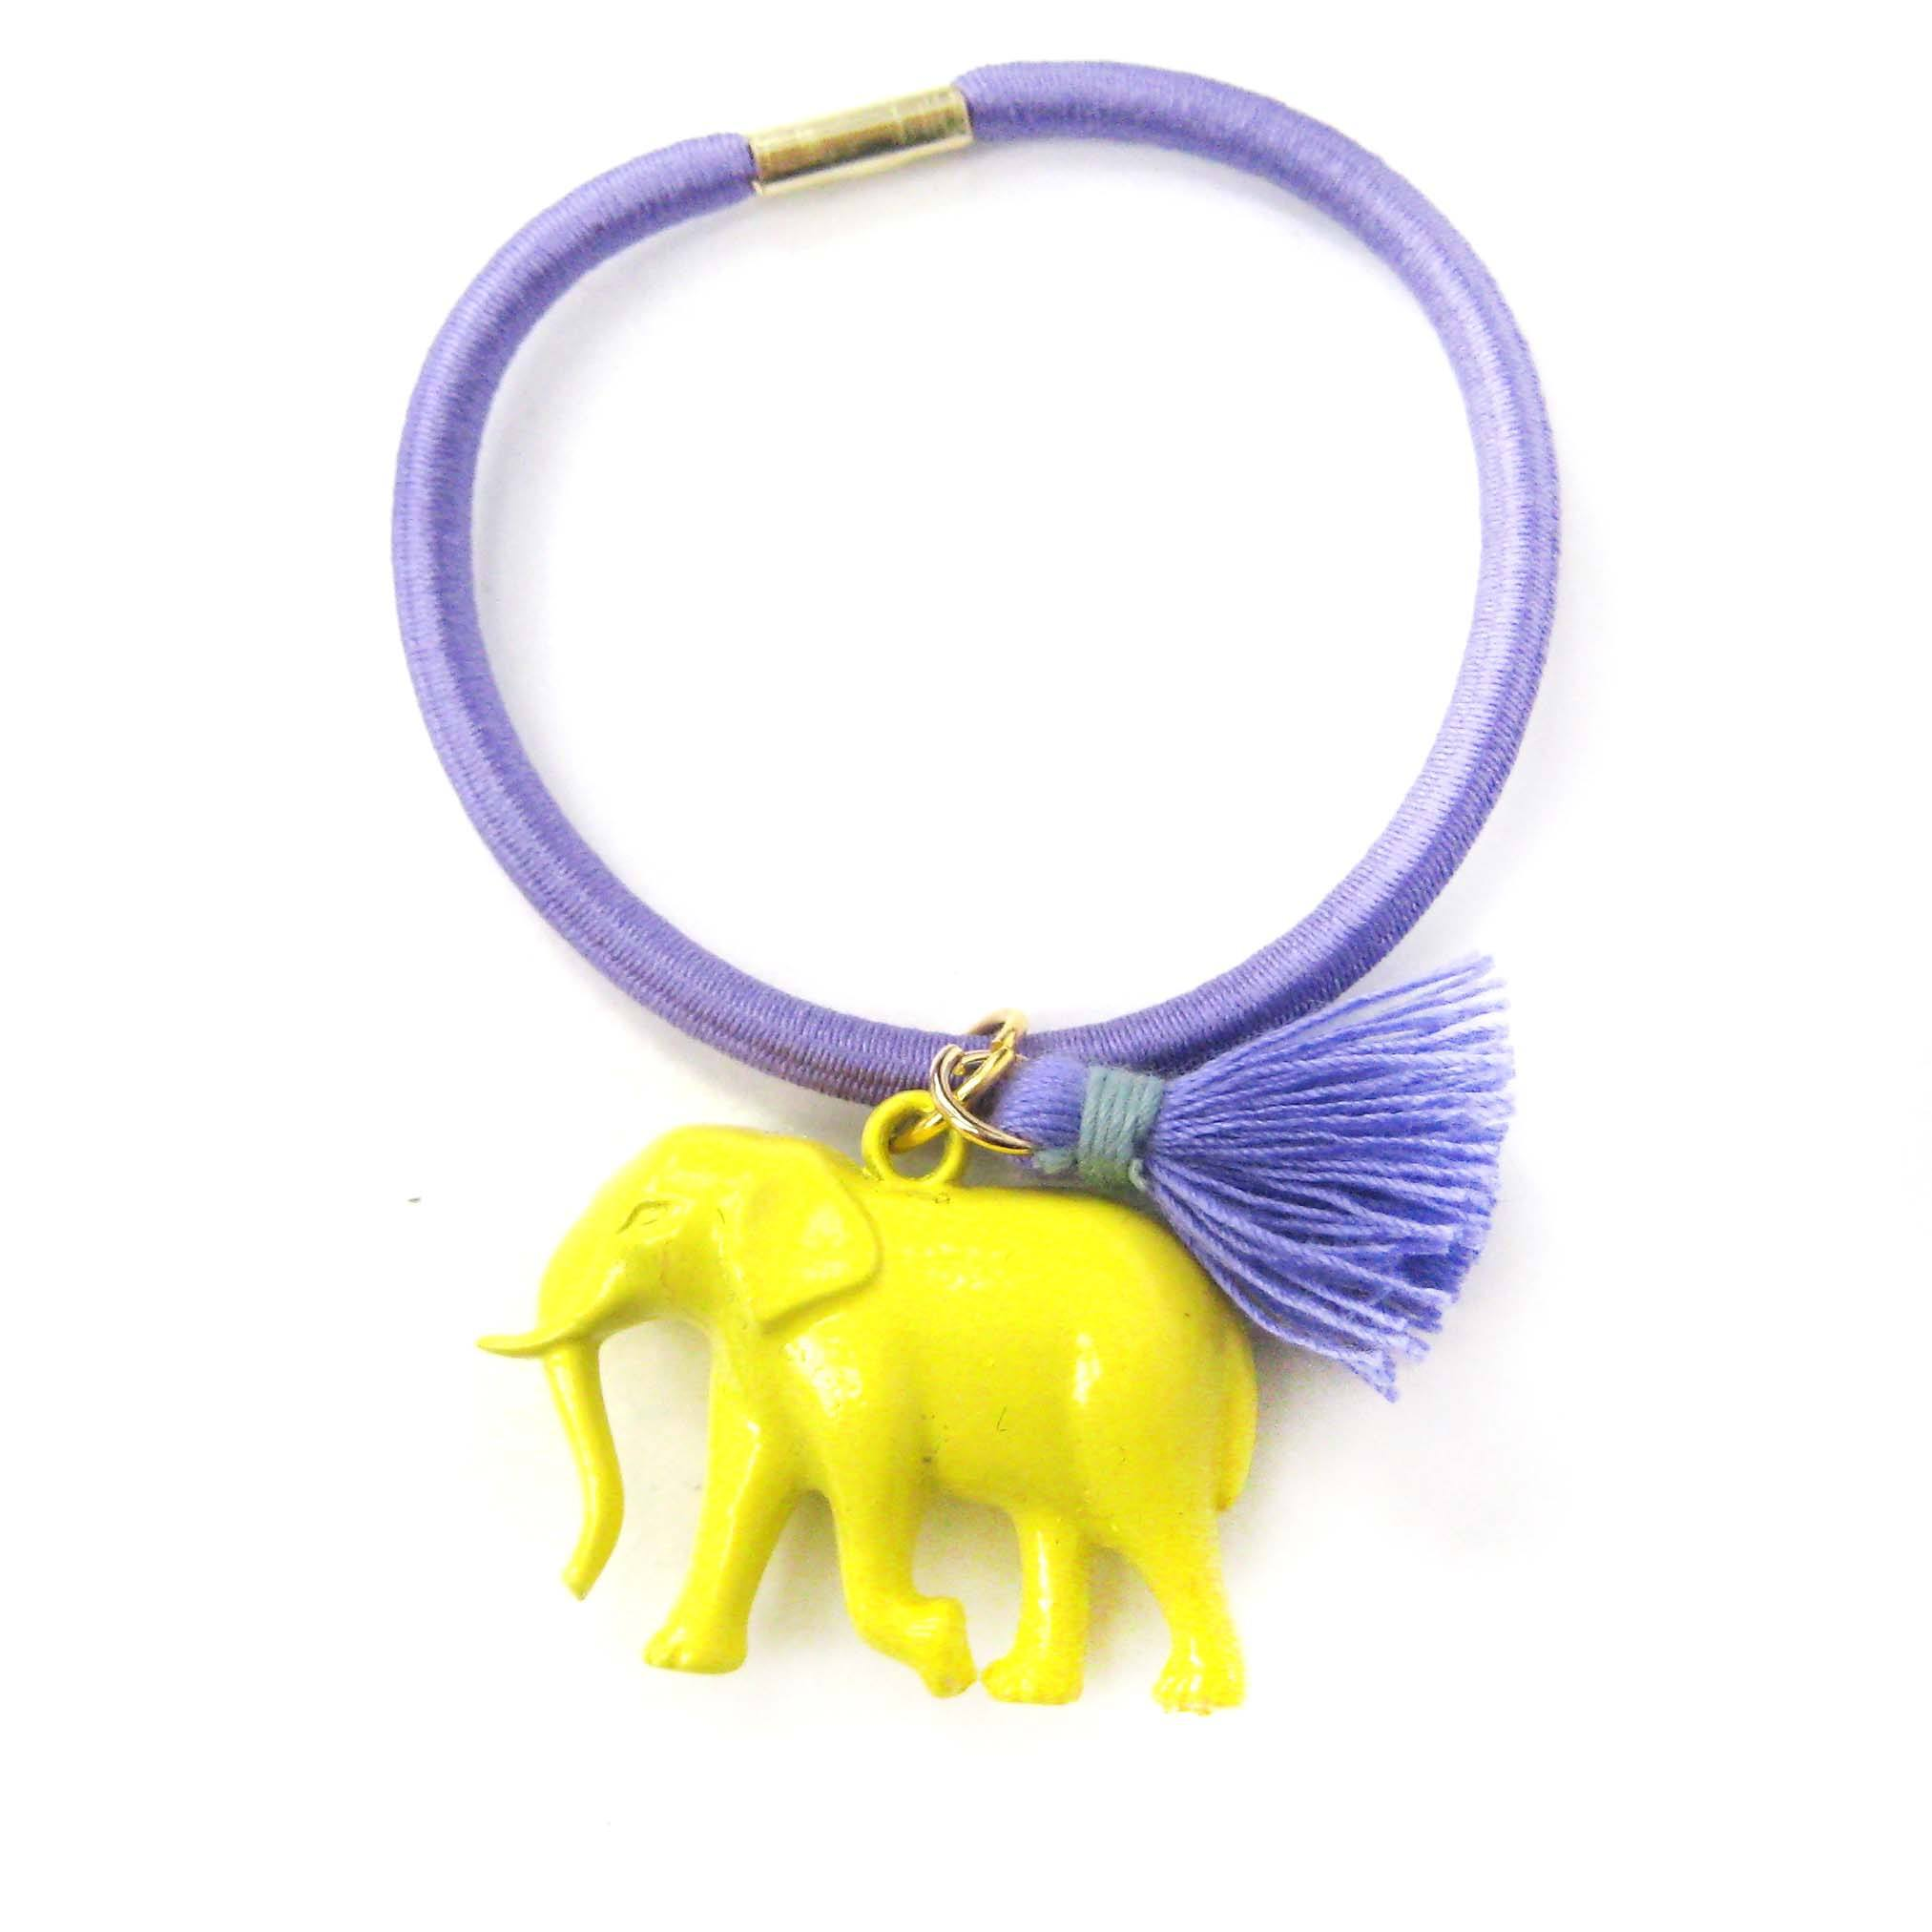 Cute Elephant Charm Hair Tie Pony Tail Holder in Bright Yellow